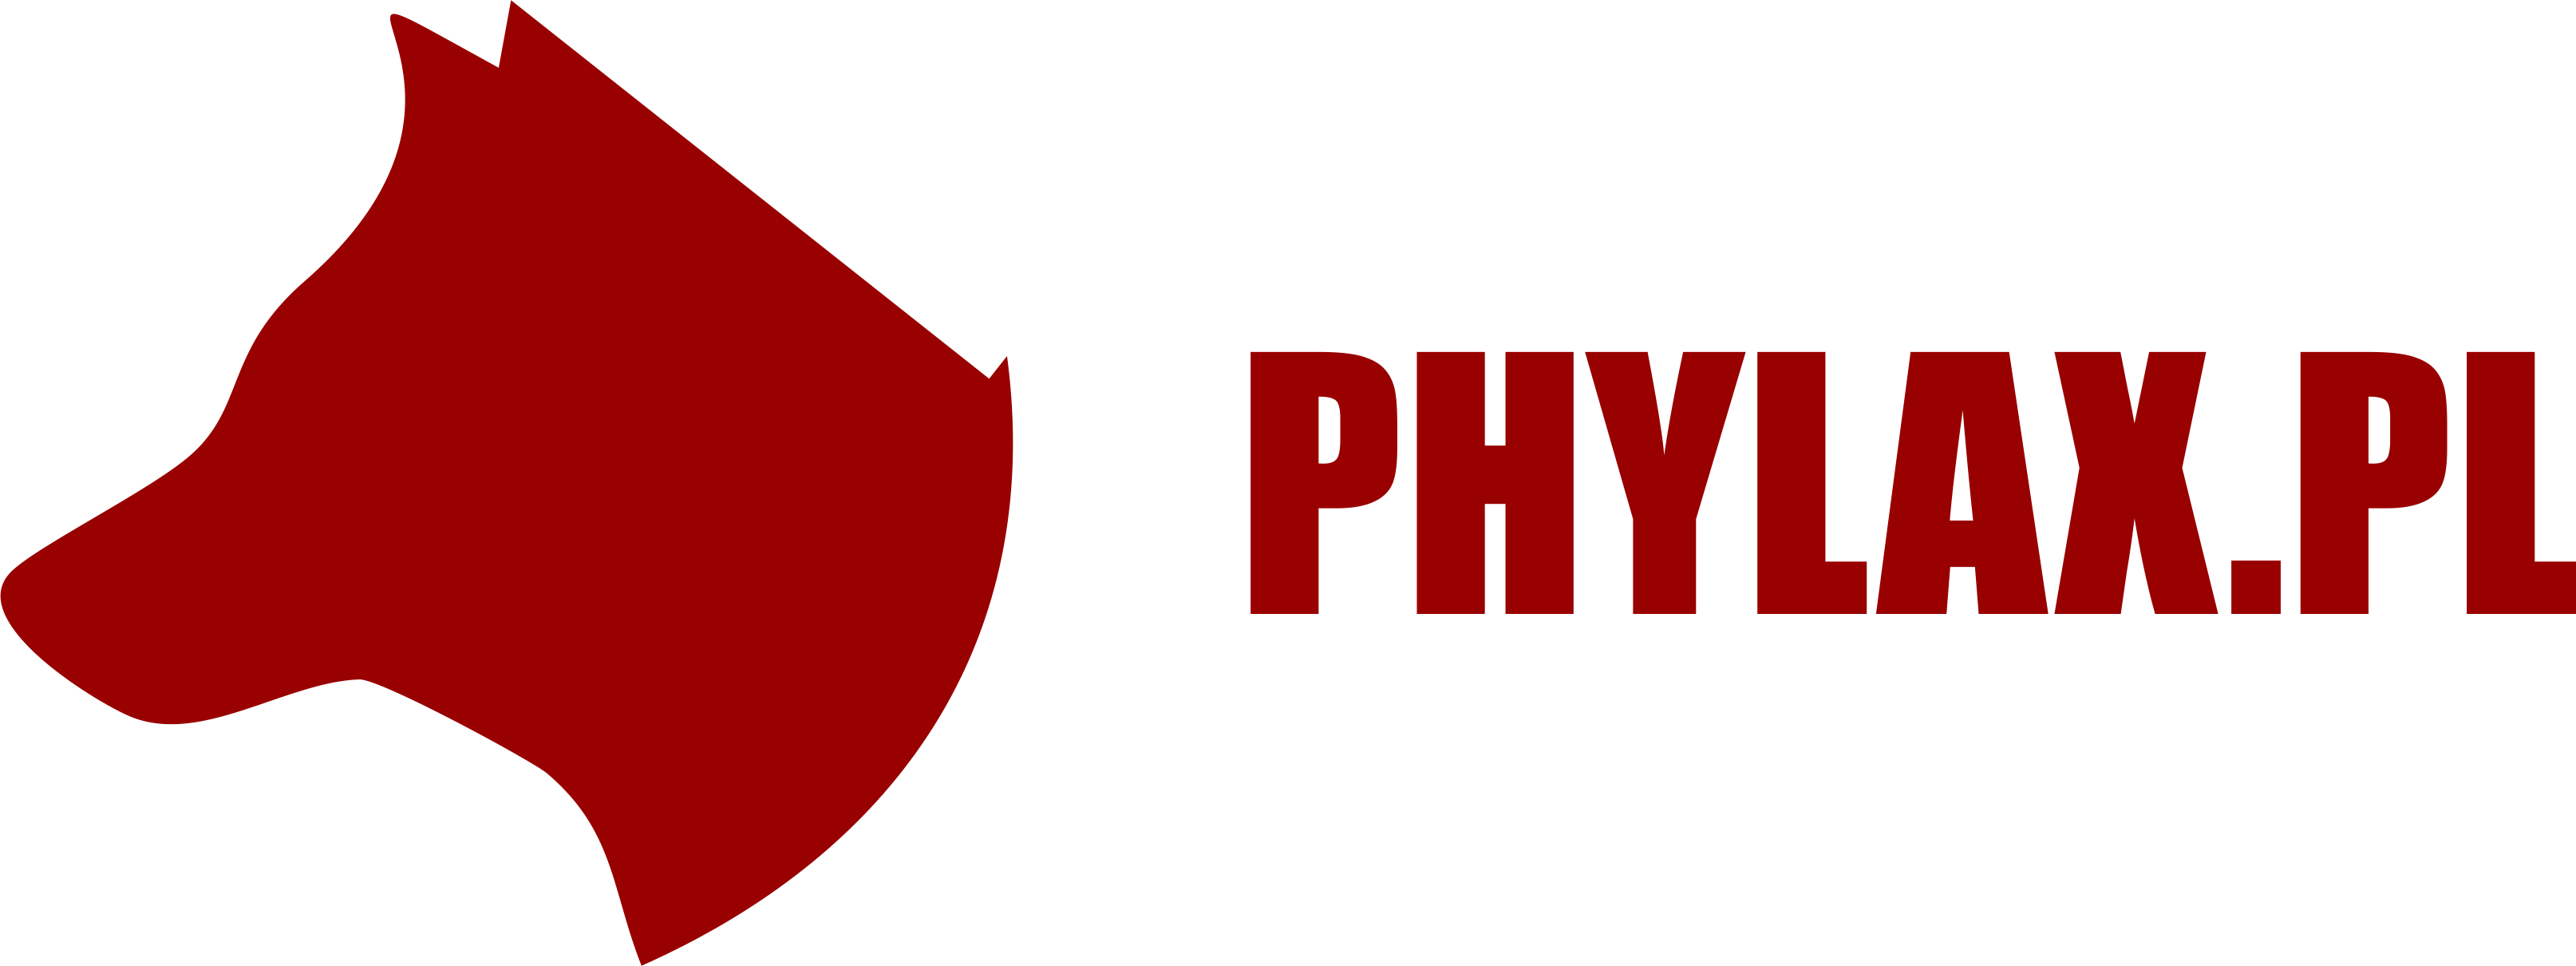 phylax.pl